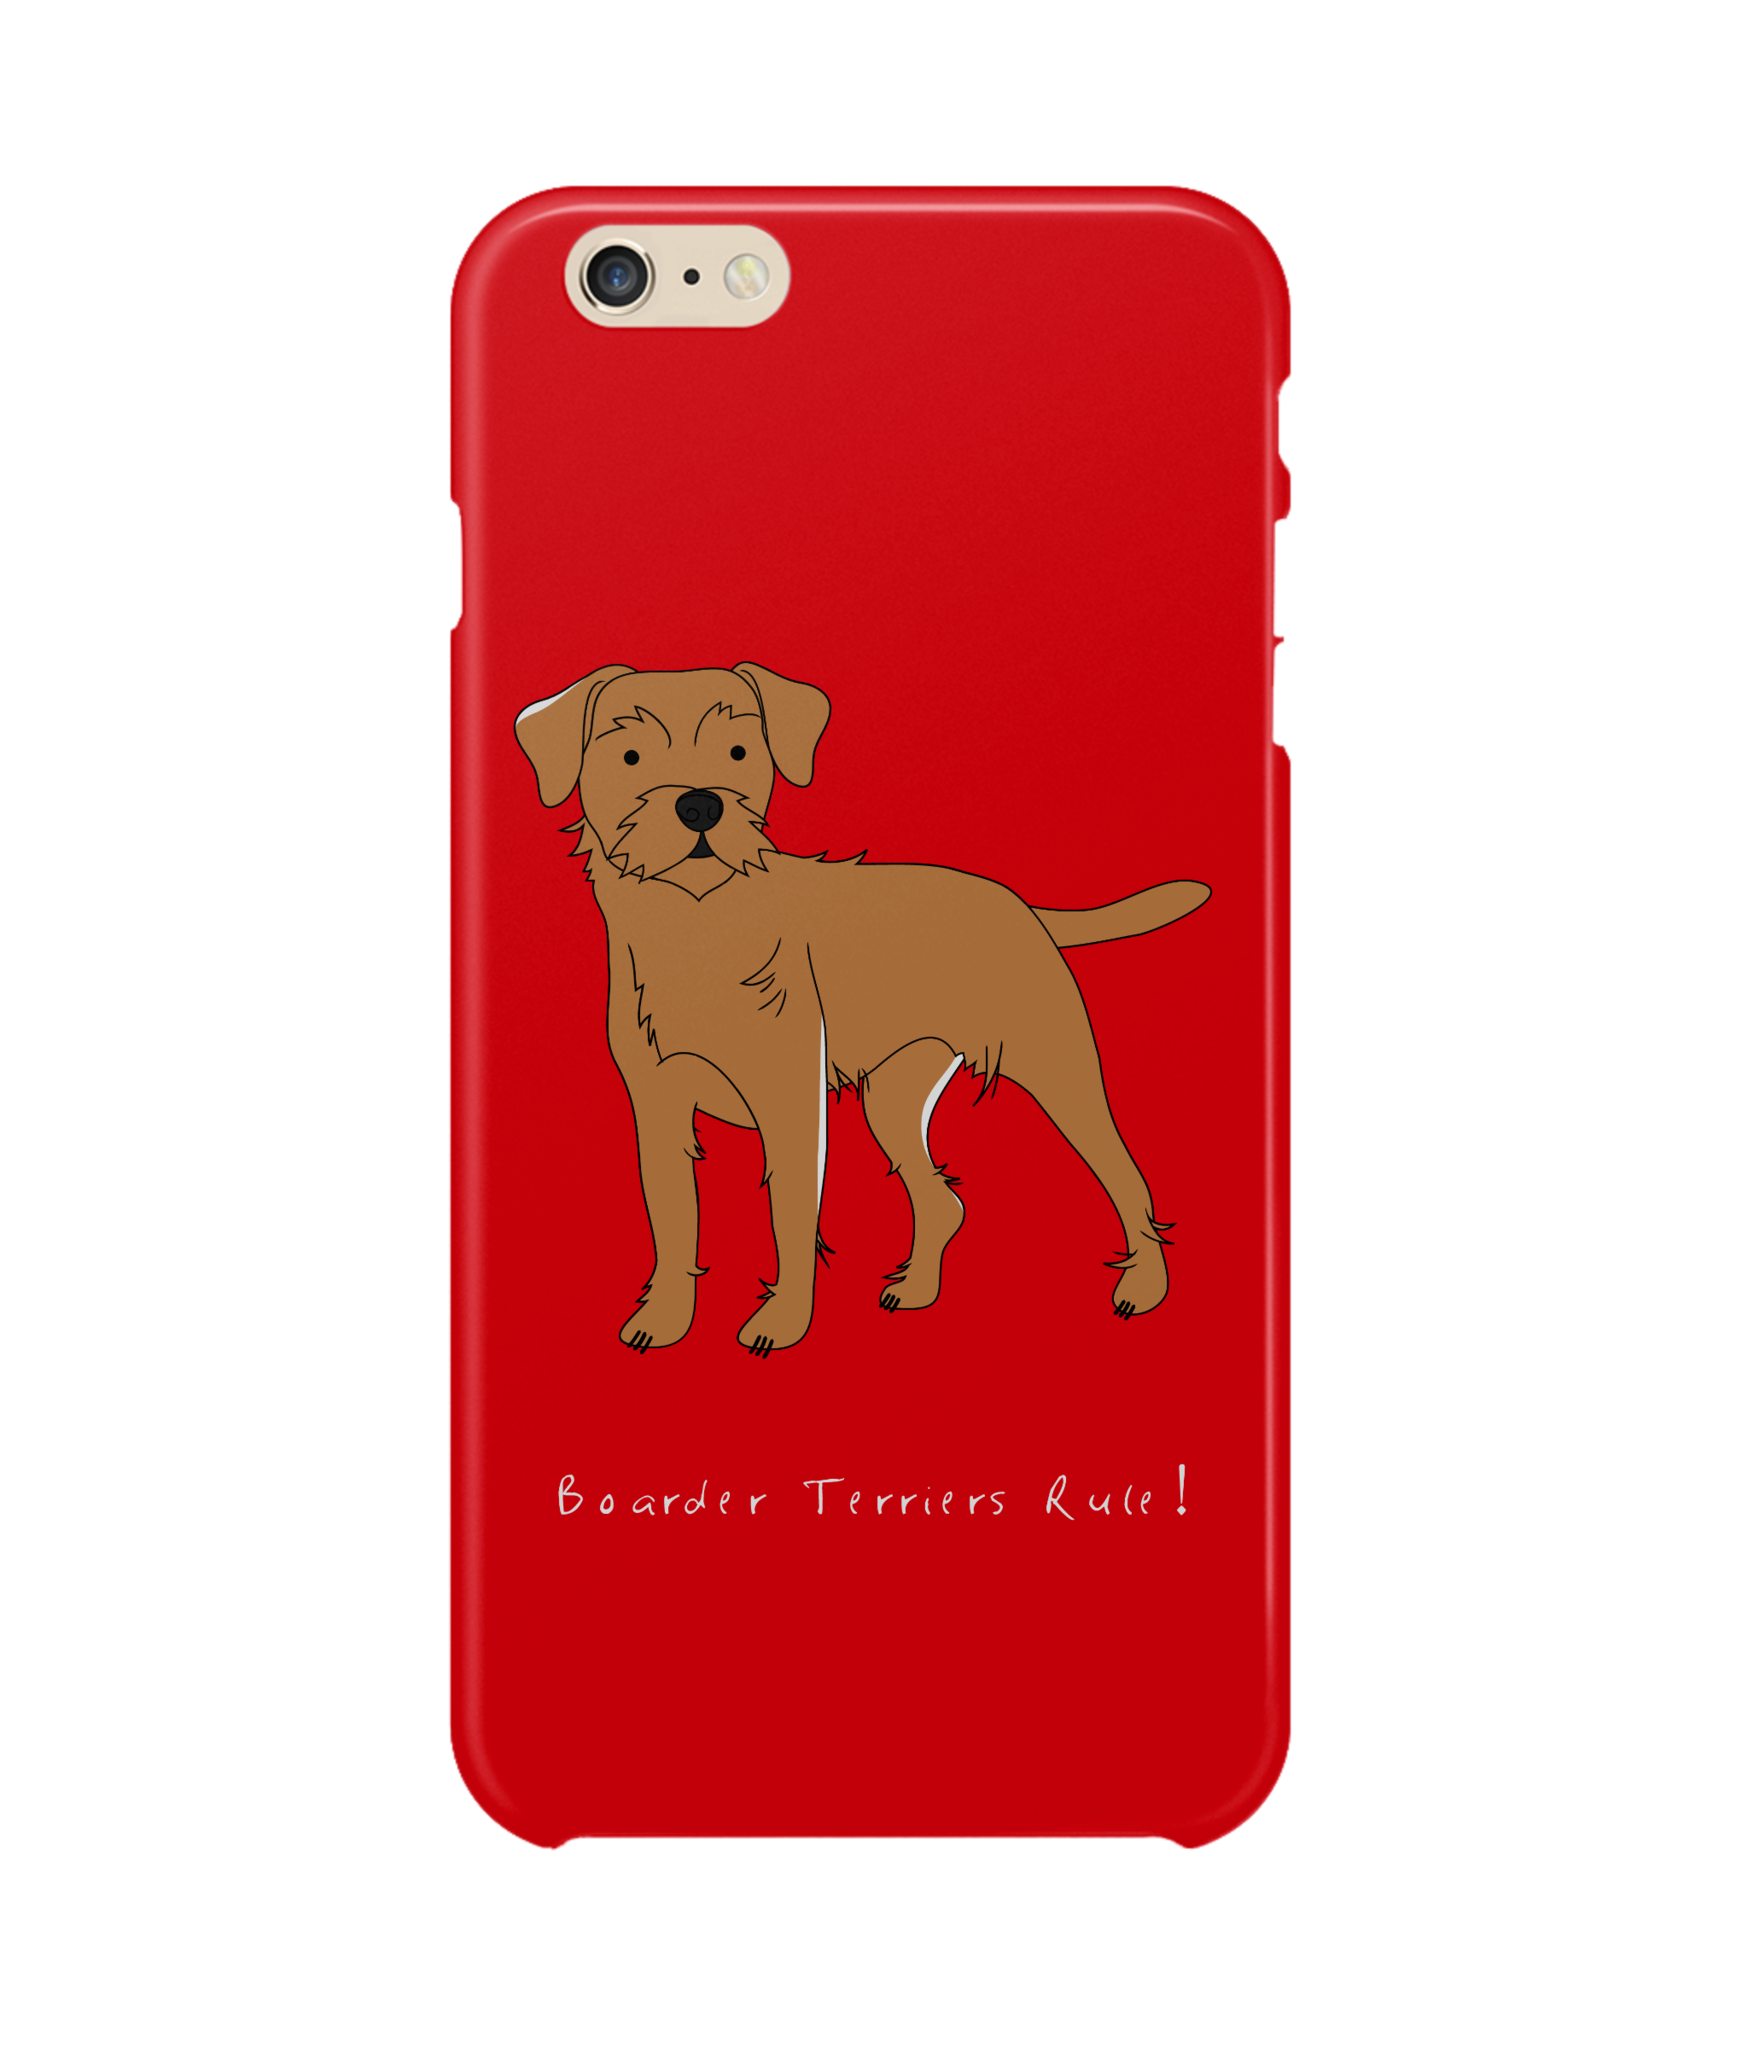 iPhone 6 Plus Full Wrap Phone Case - Boarder Terriers Rule!